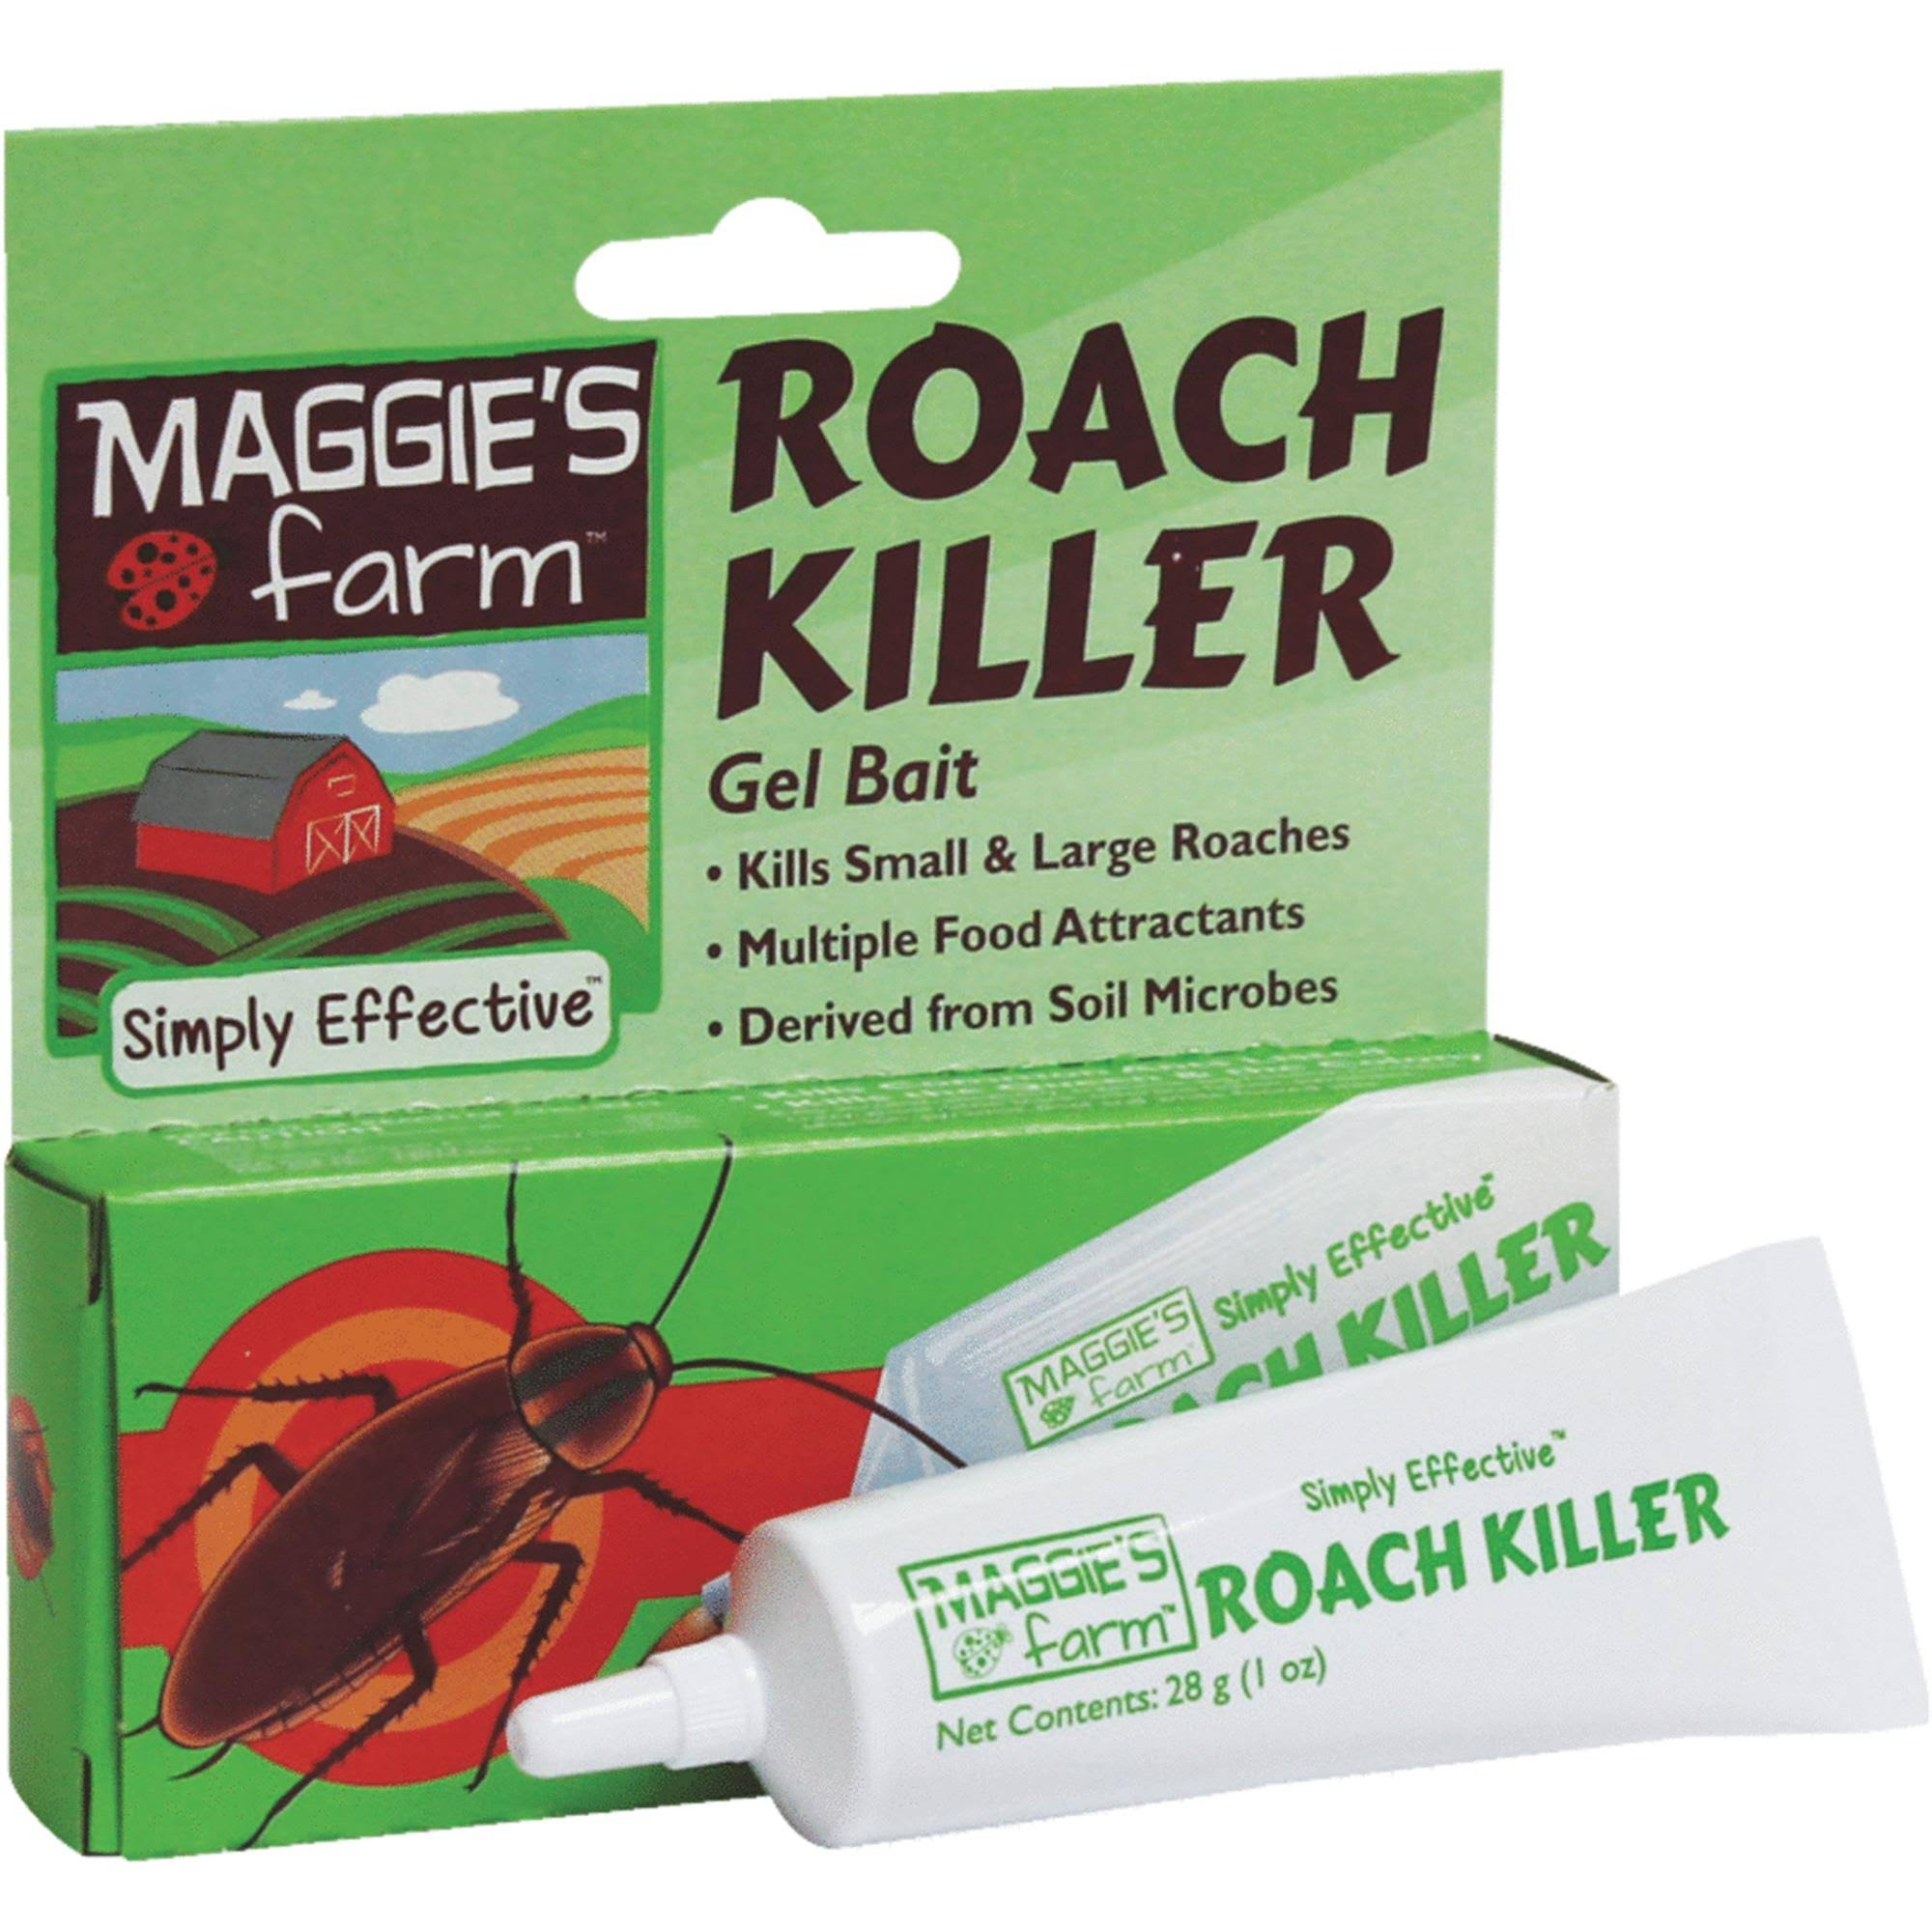 Maggie's Farm Roach Killer - 1 oz